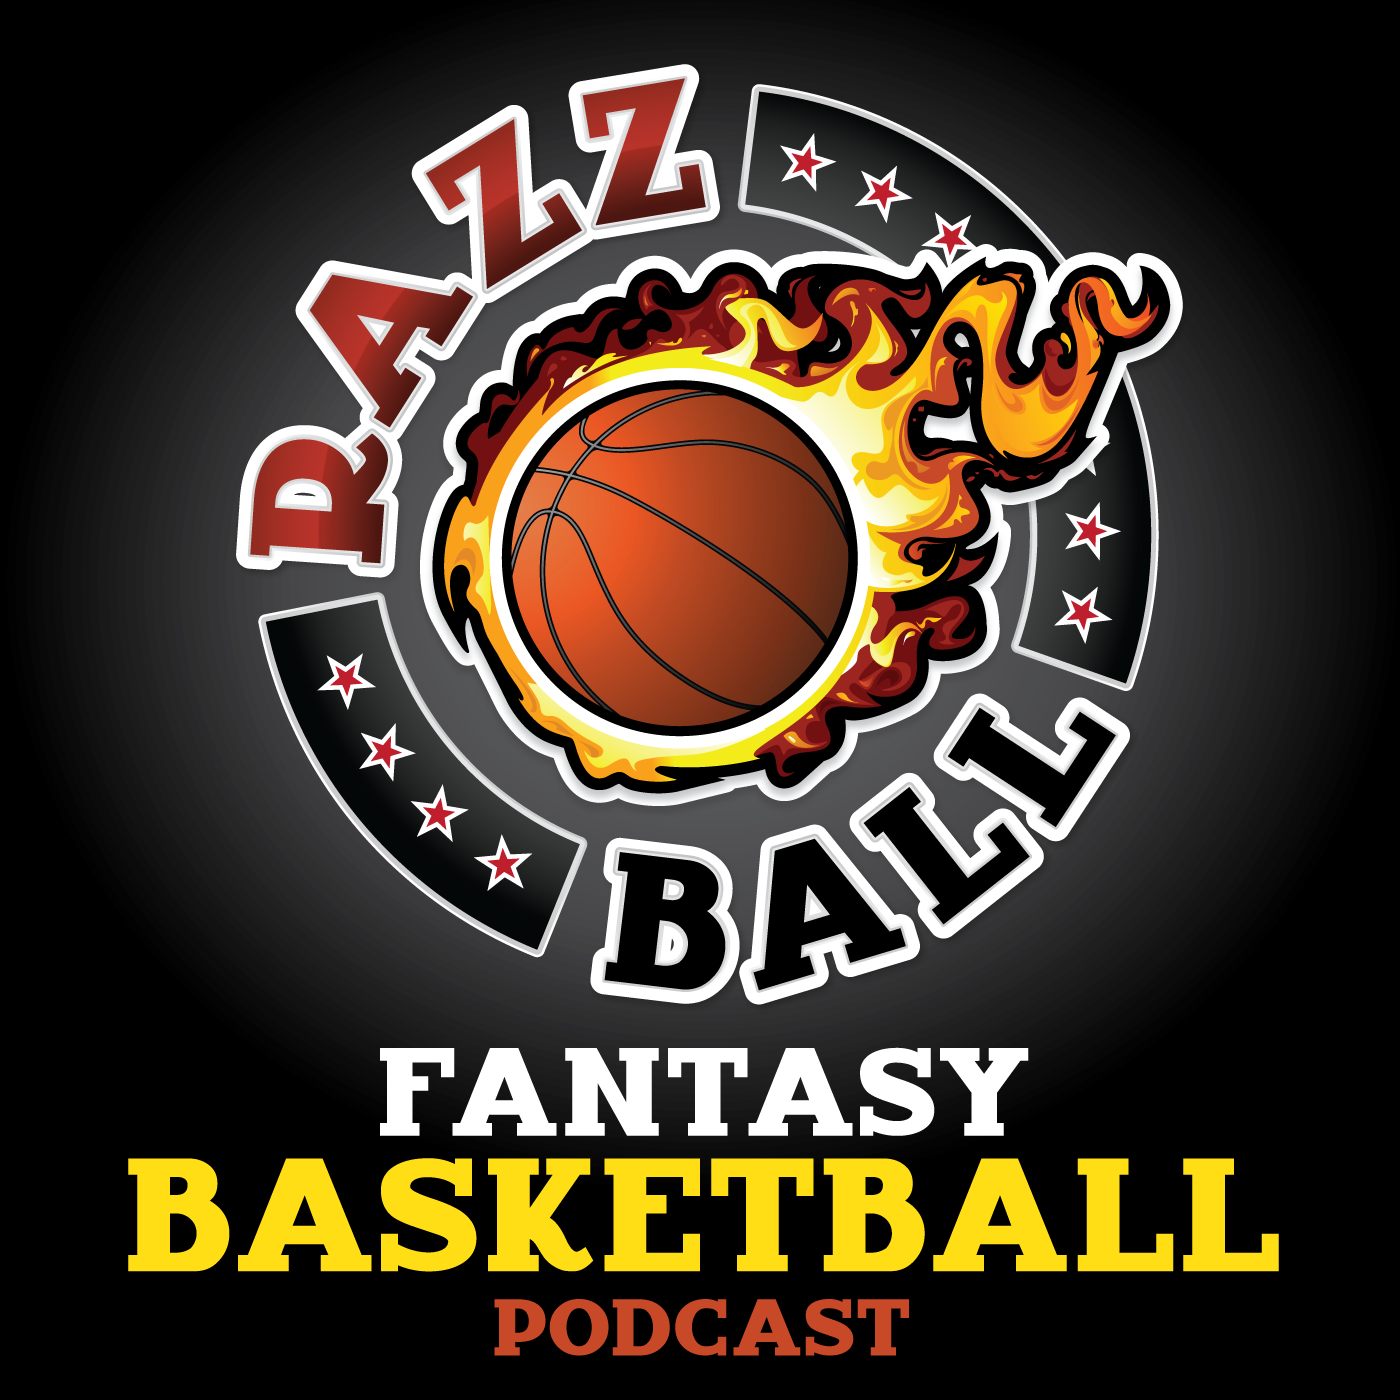 Razzball Basketball Podcast